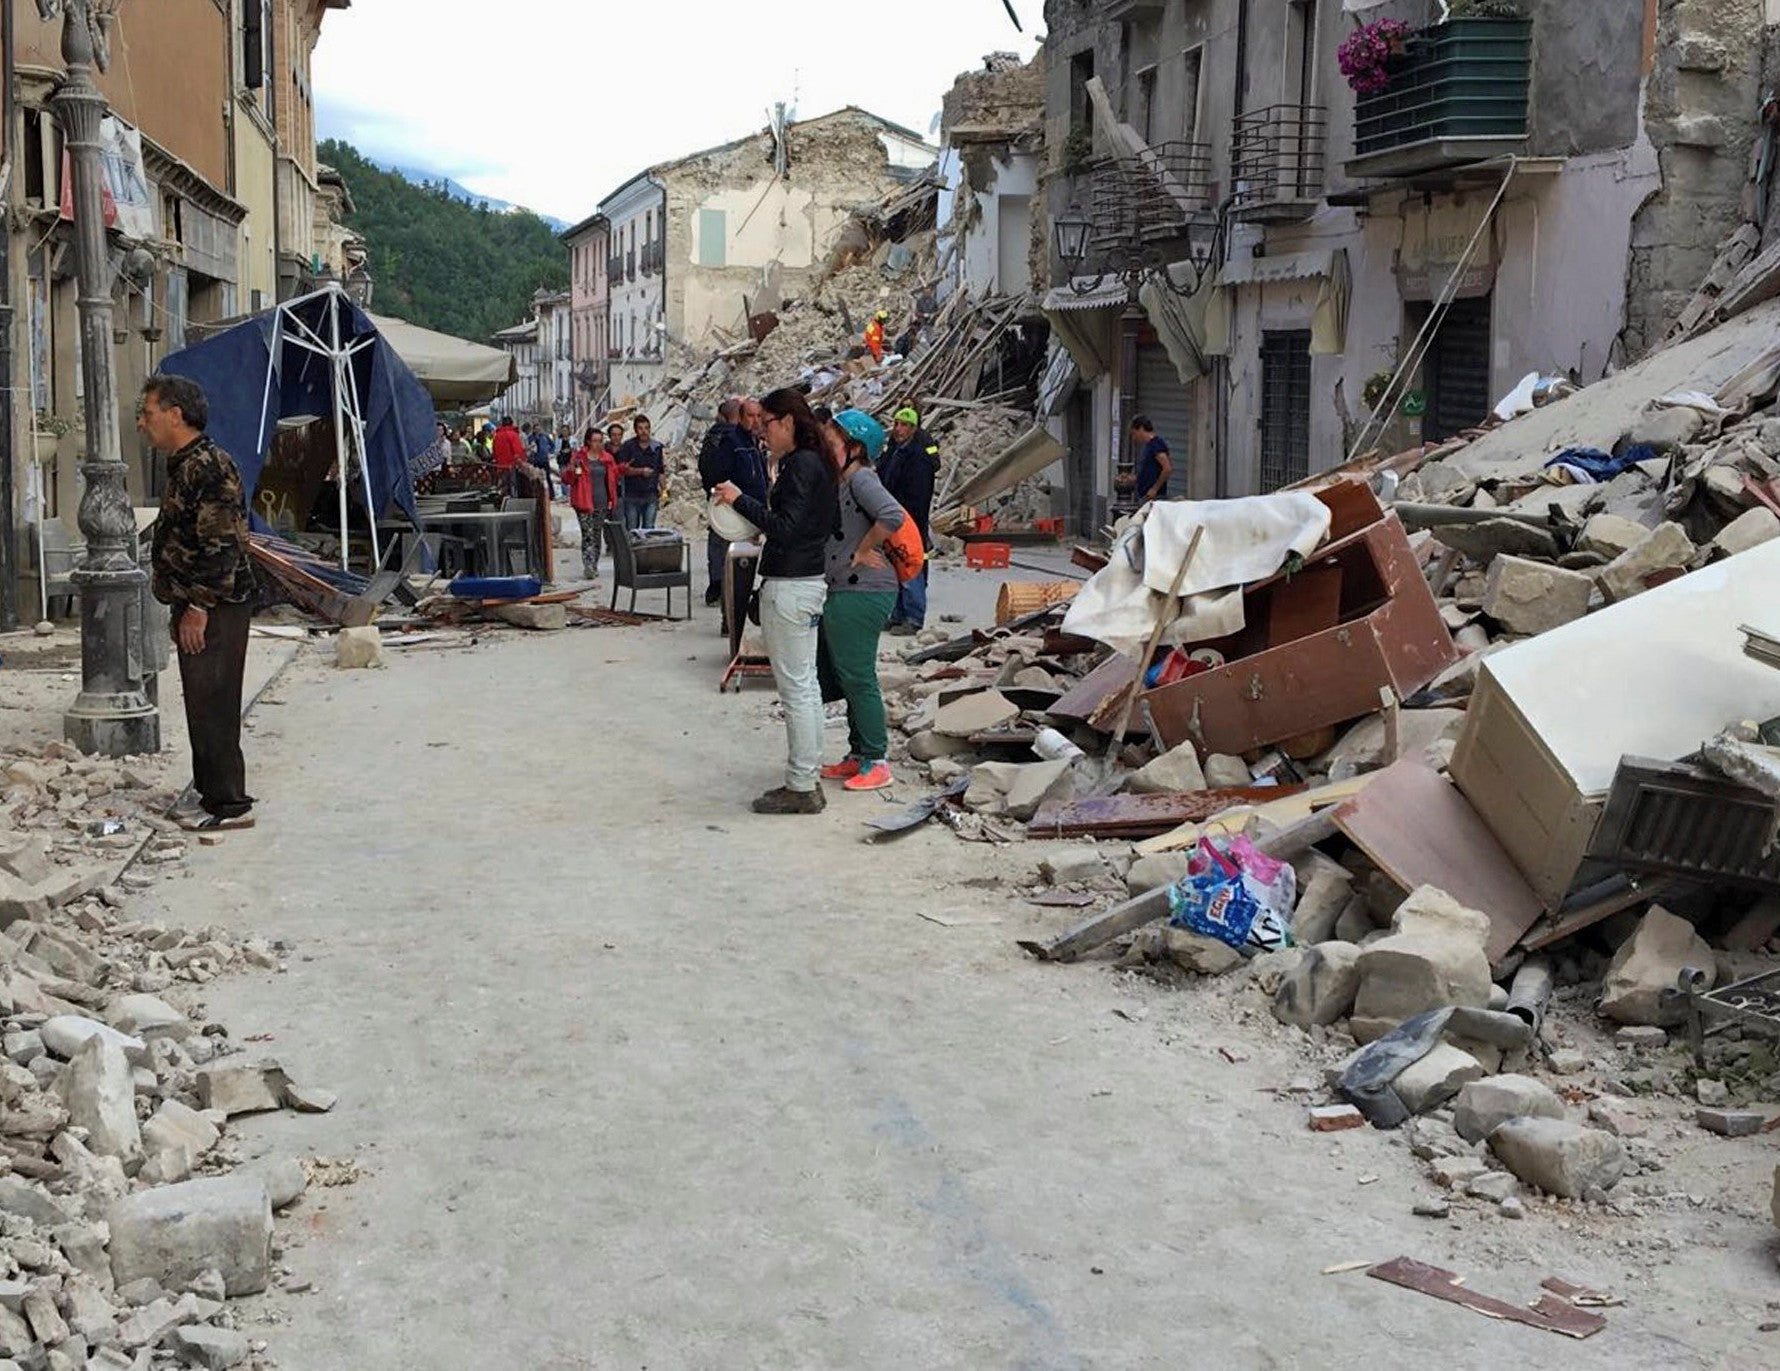 Italy earthquake: Extraordinary stories of survival emerge